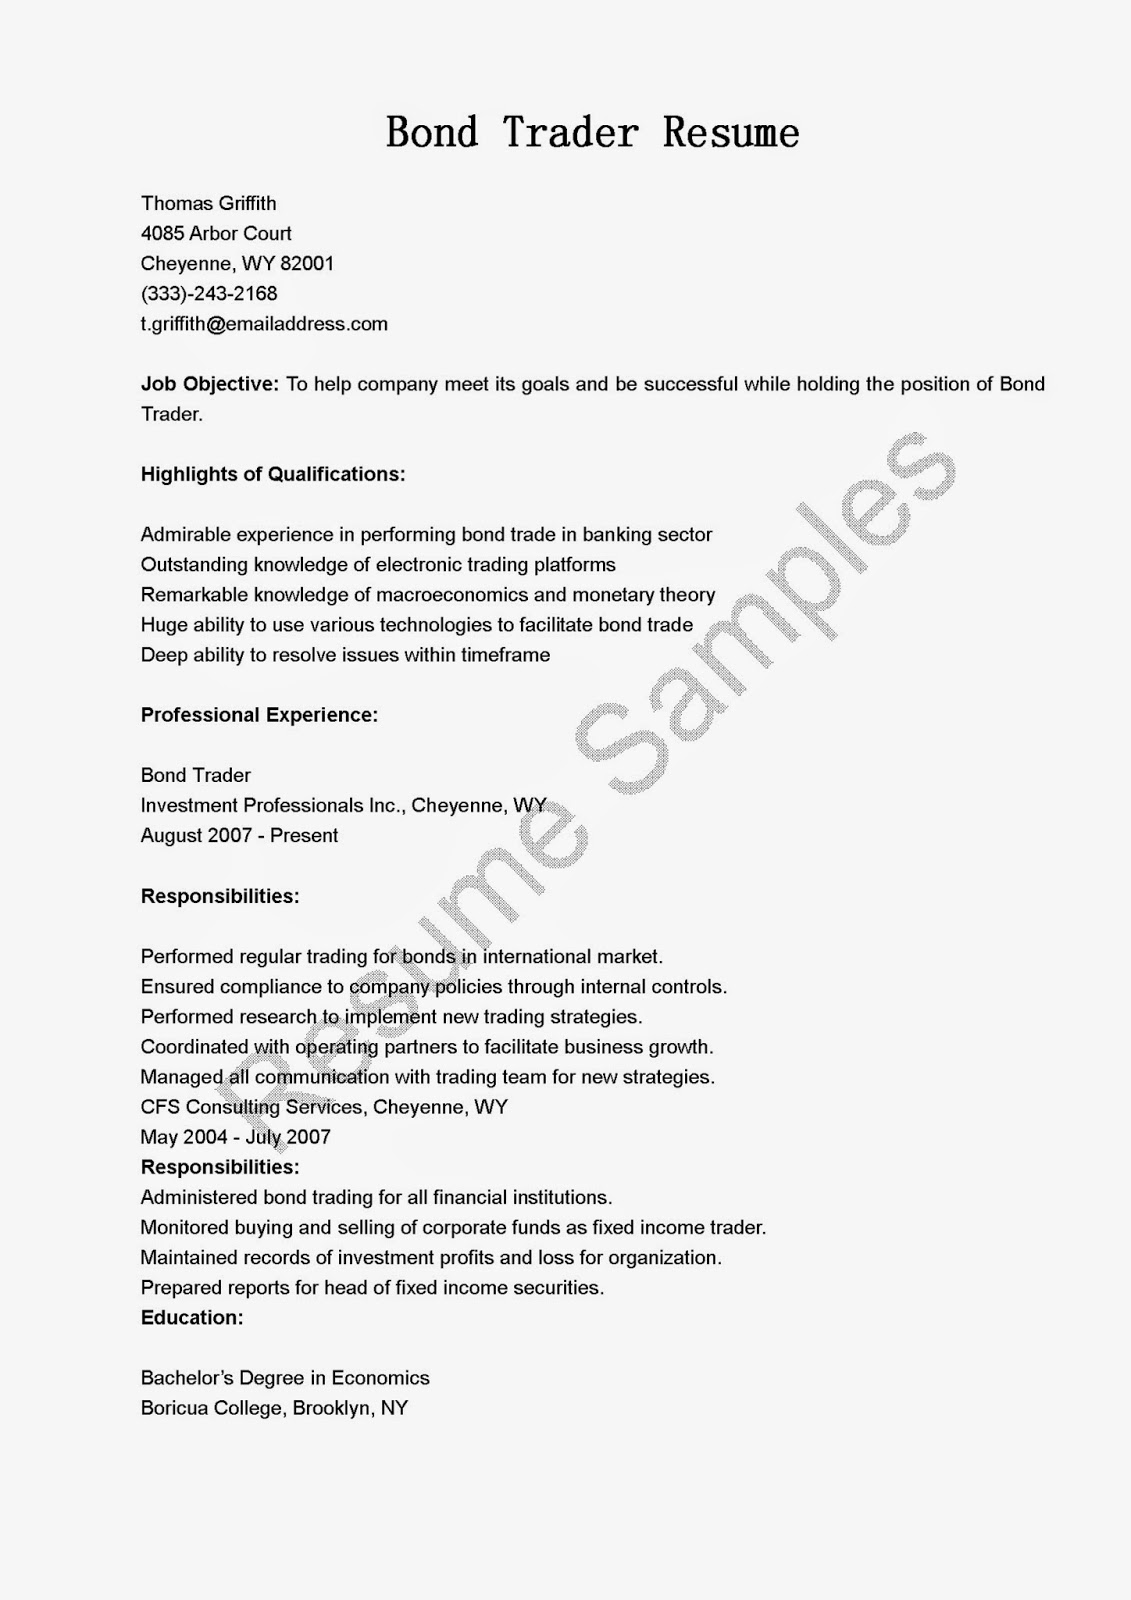 Philip Green CV Best Marketing Resumes Tradeciety